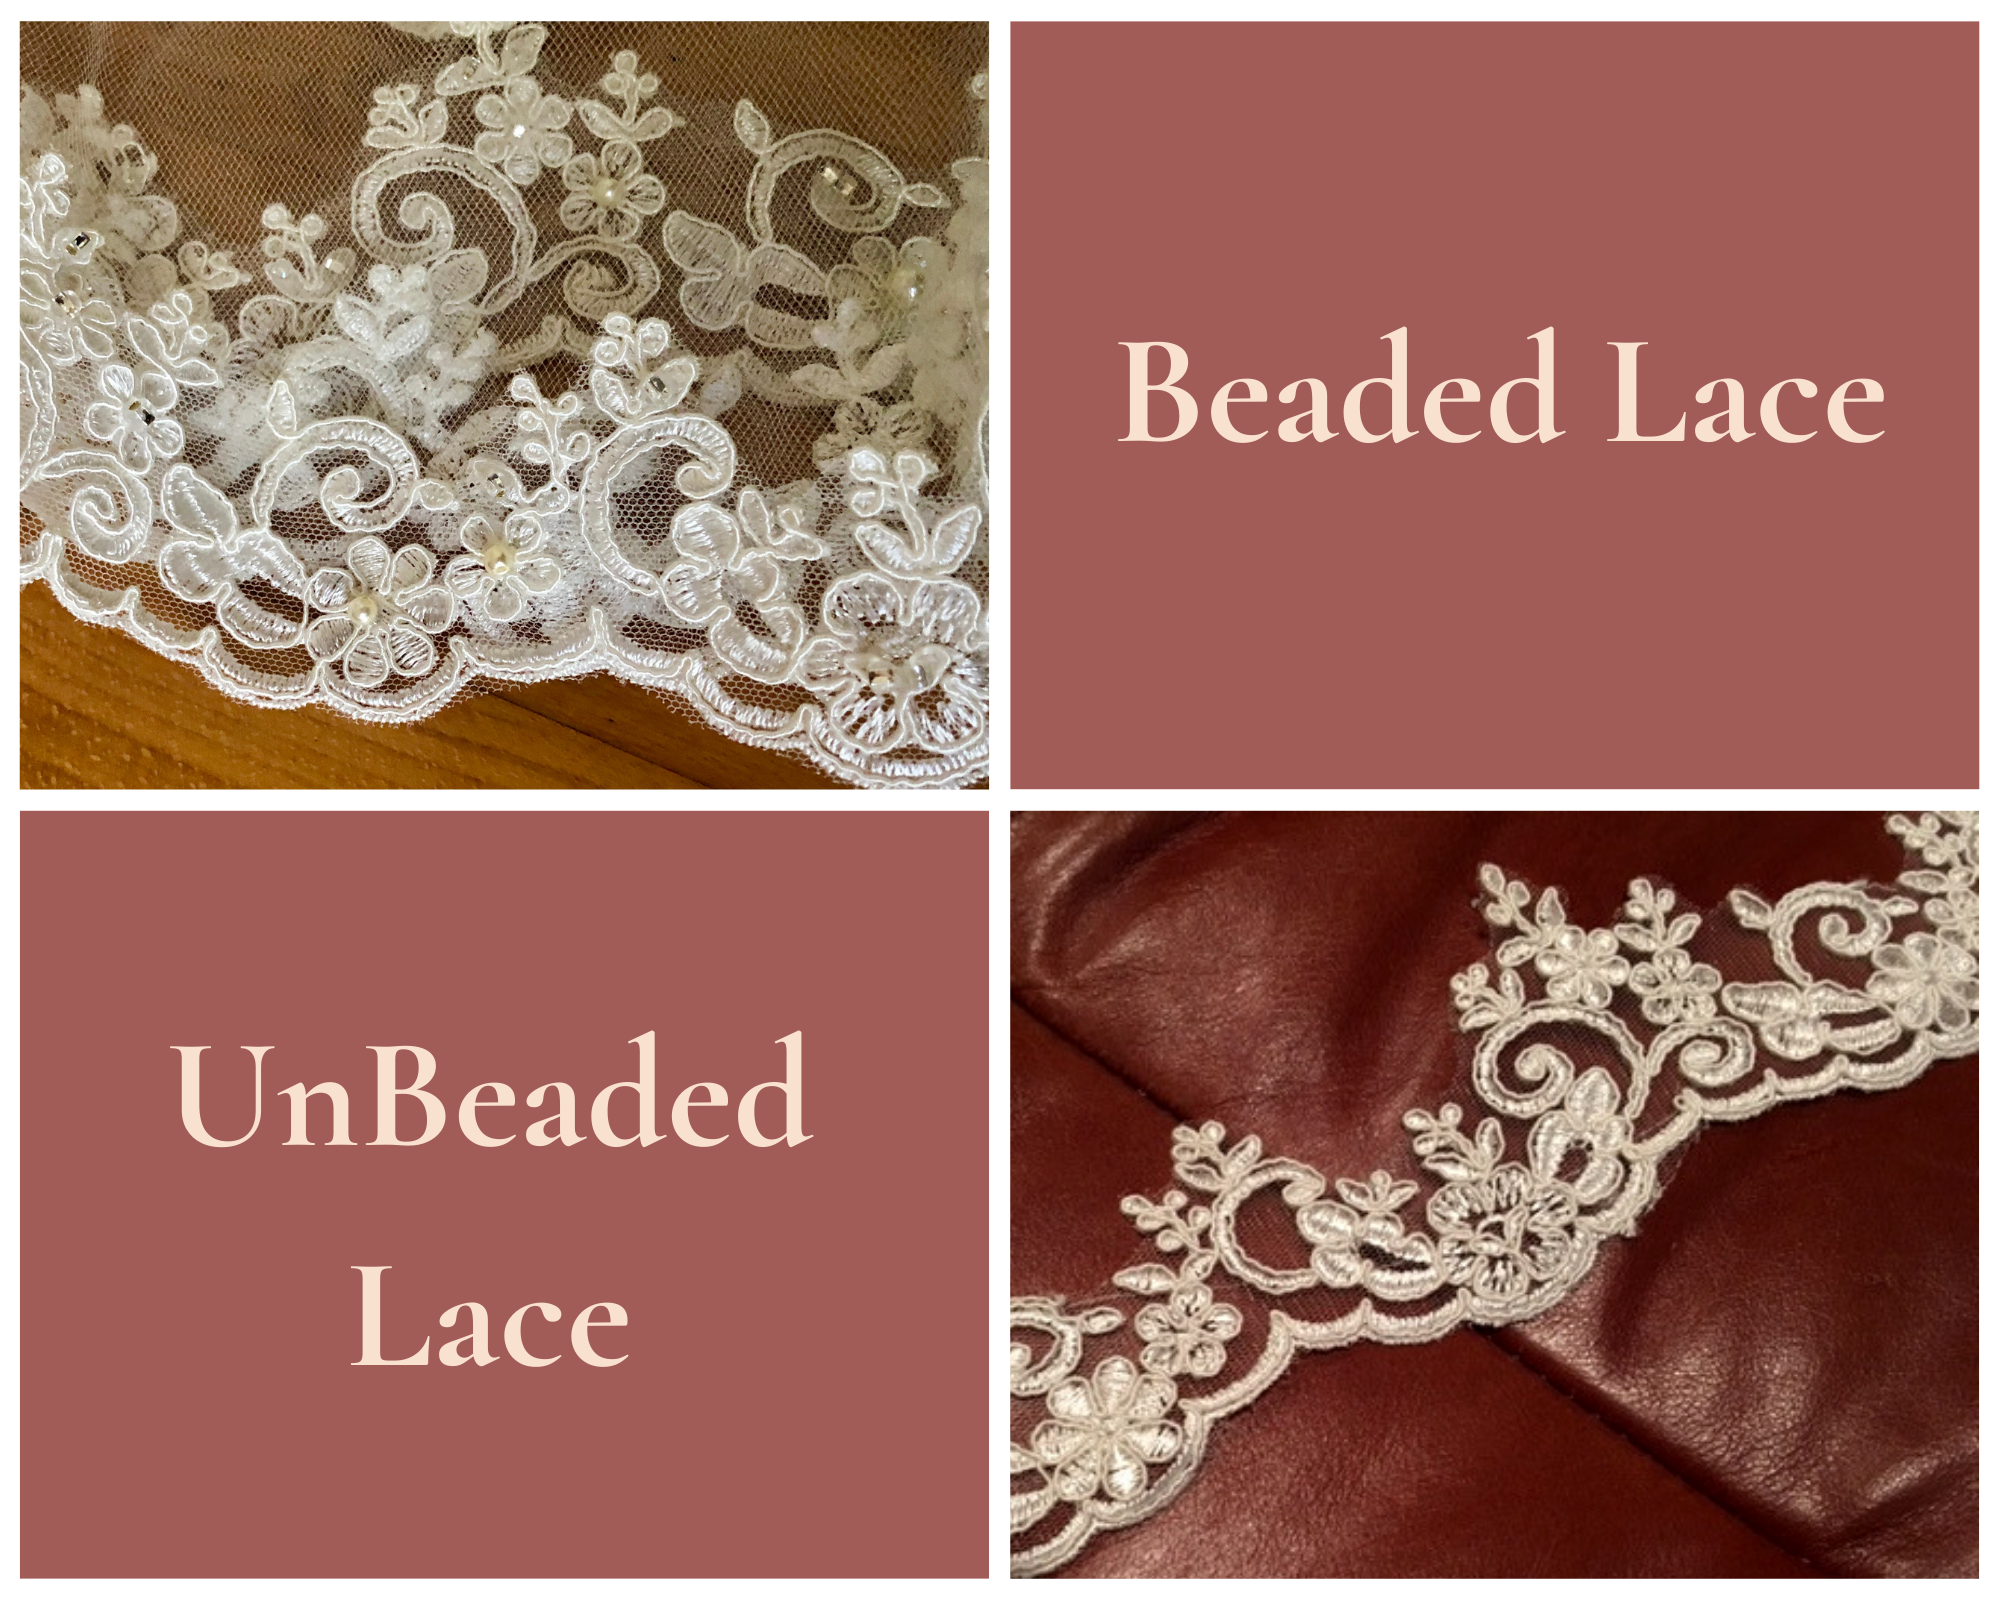 Pearl and Crystal Lace Veil vs UnBeaded Lace Veil